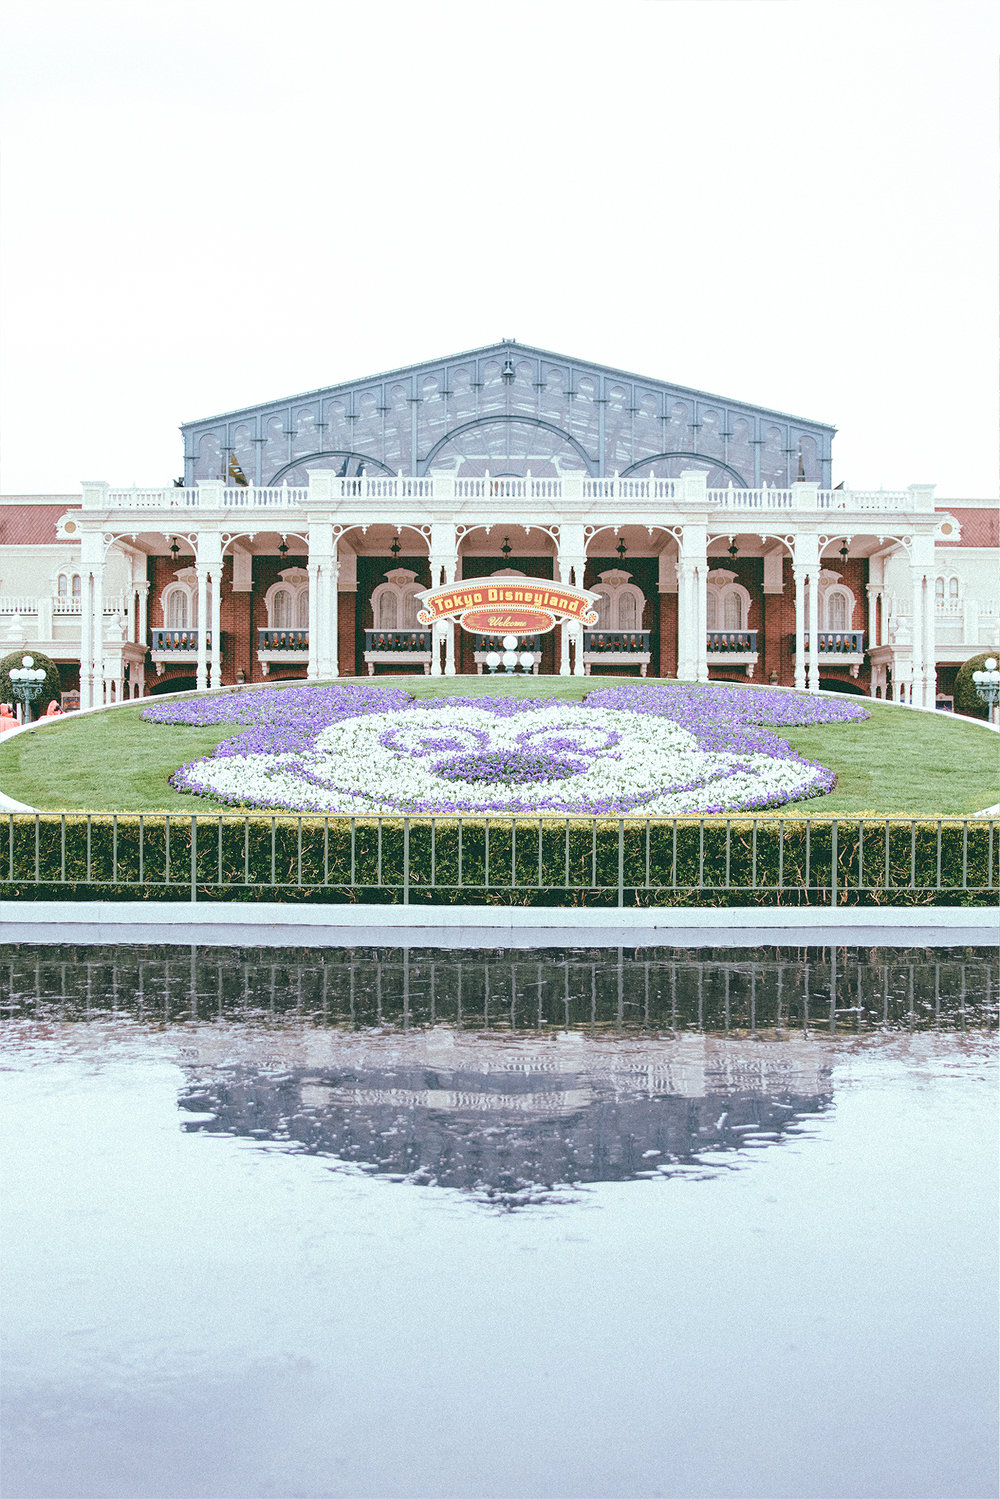 This is actually the first time I've ever seen the topiary Mickey without any promotional statue!